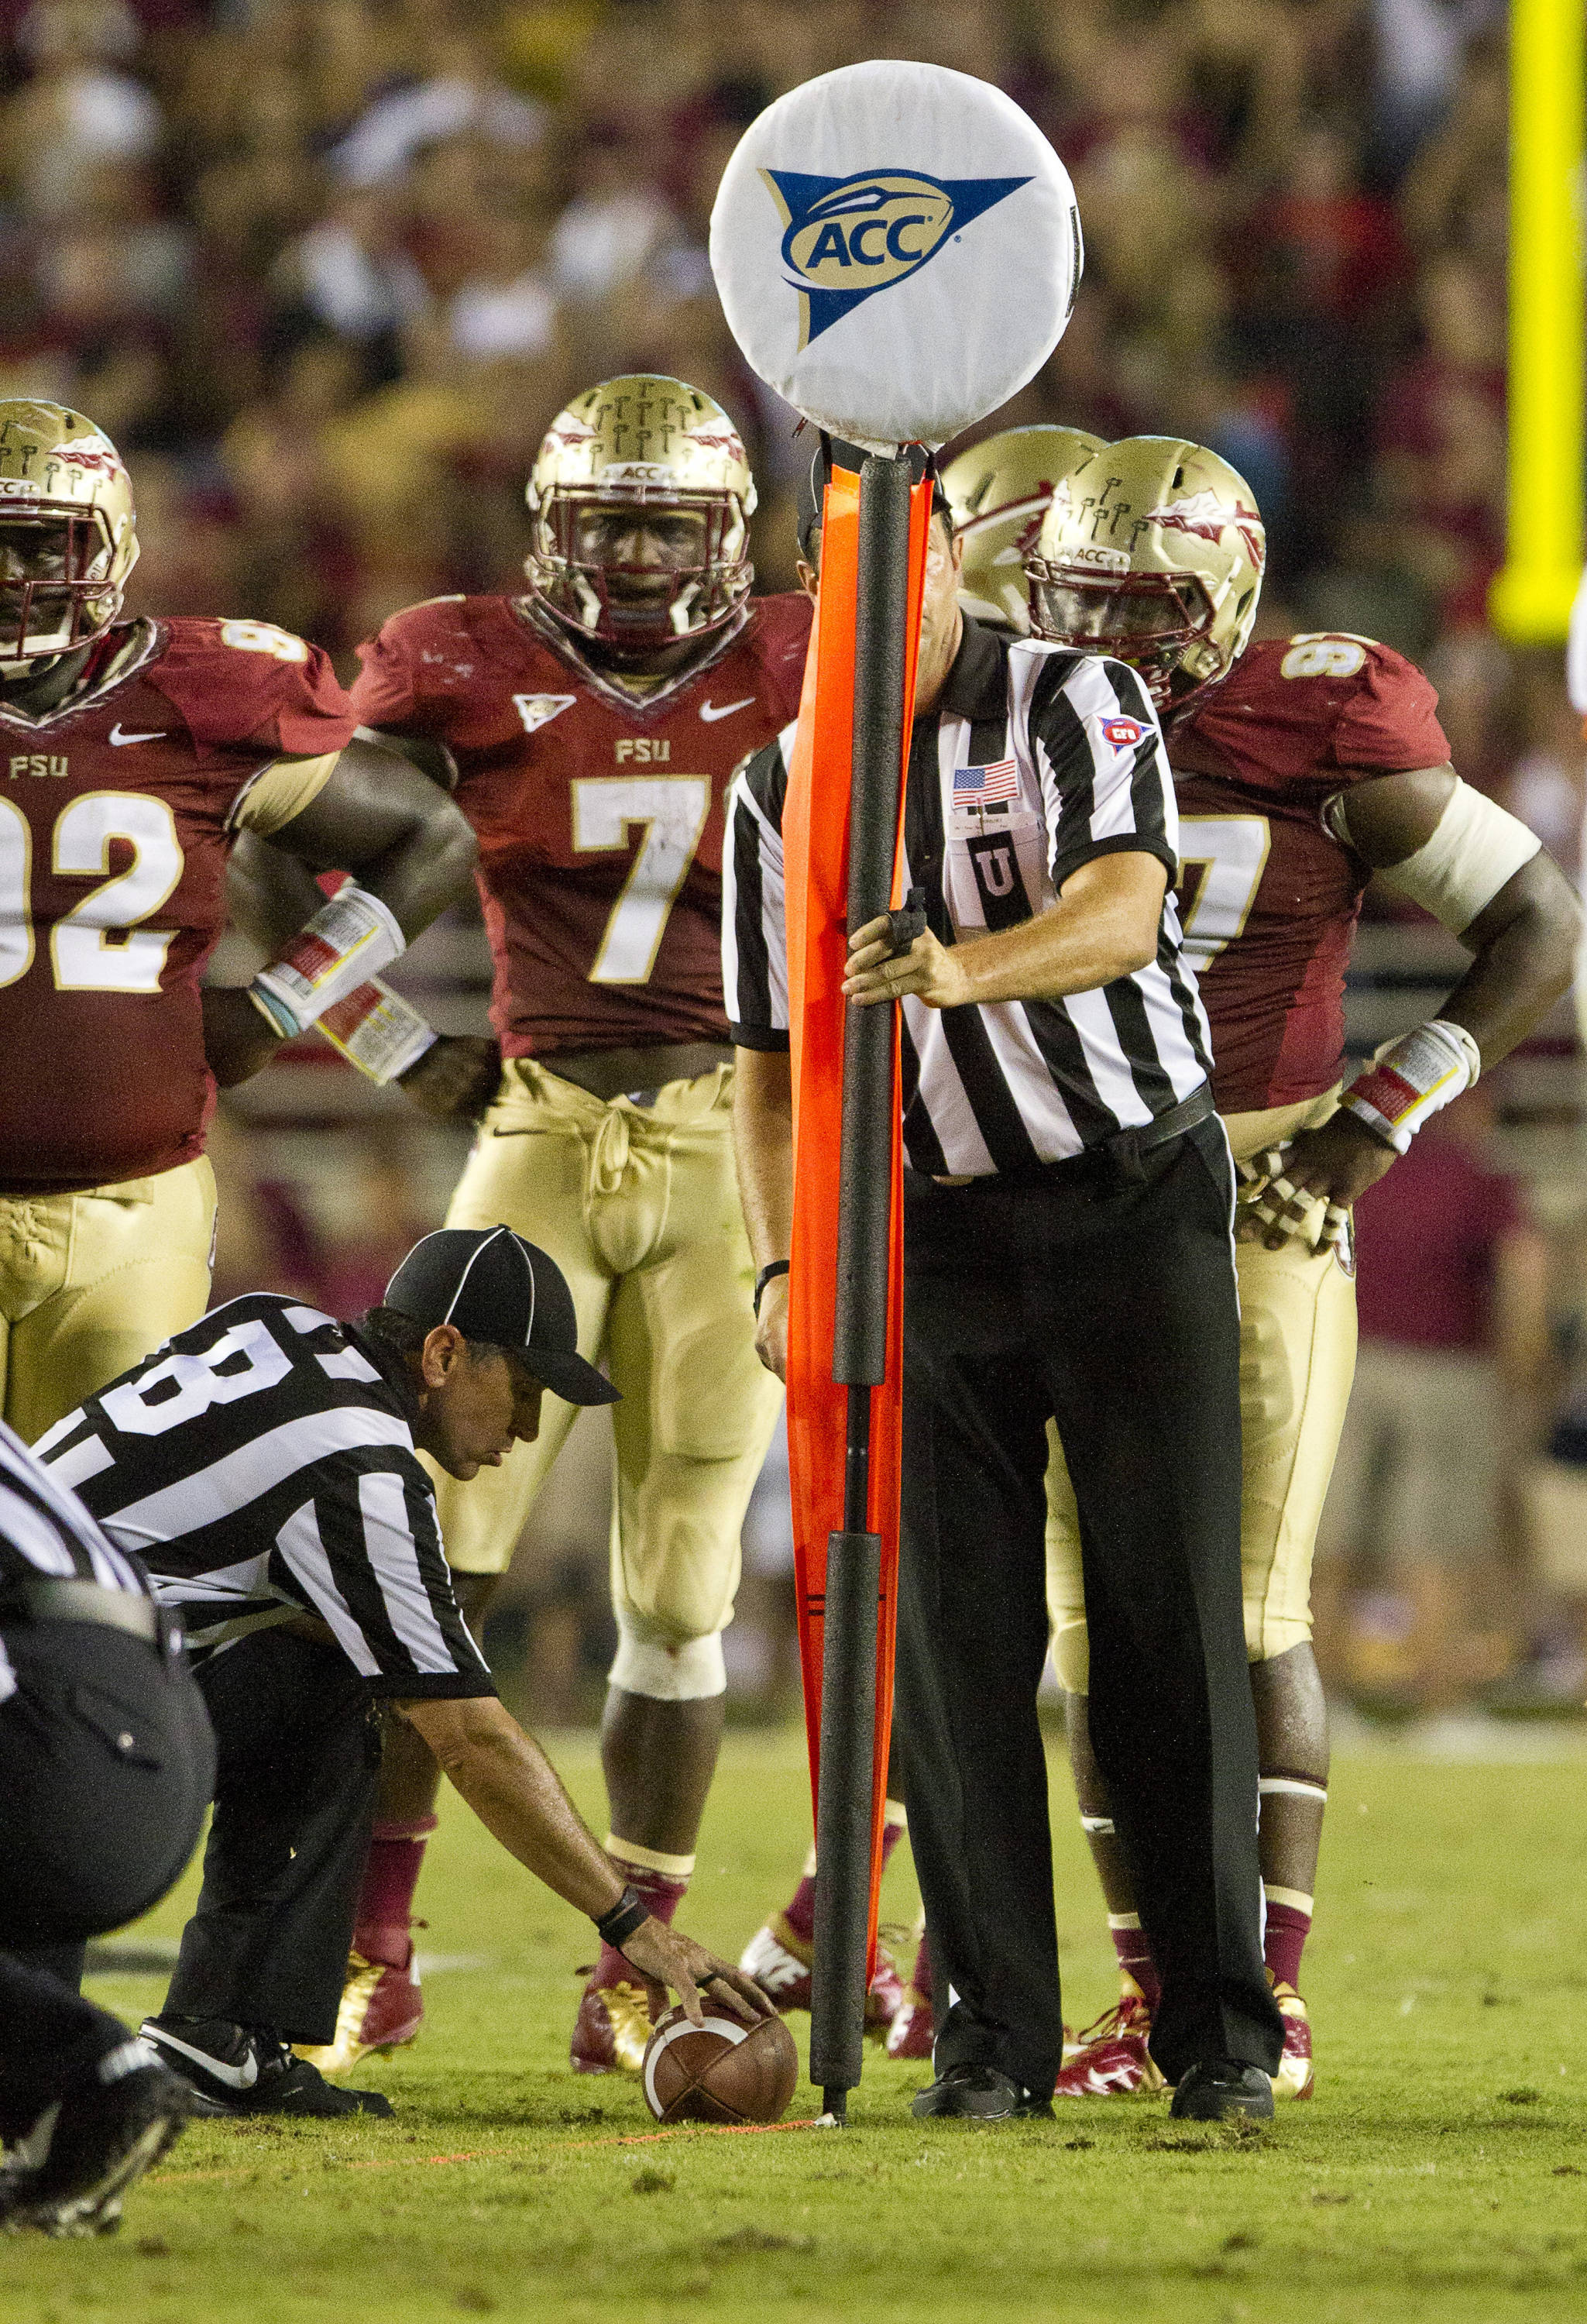 Referees check to see if a first down has been earned.